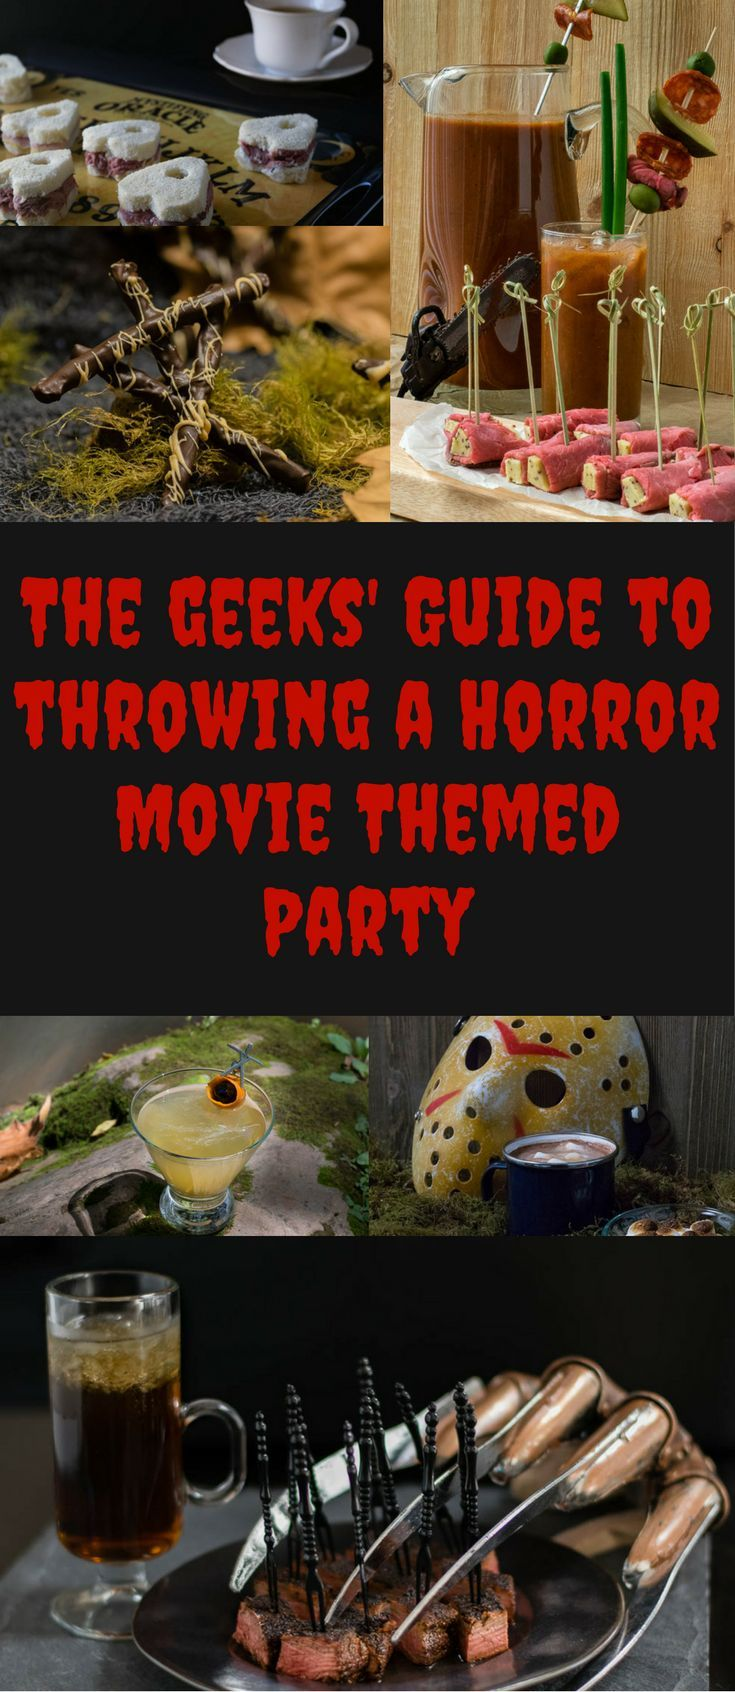 The Geeks Guide To Throwing A Horror Movie Themed Party Movie Themed Party Halloween Party Themes Horror Themed Party